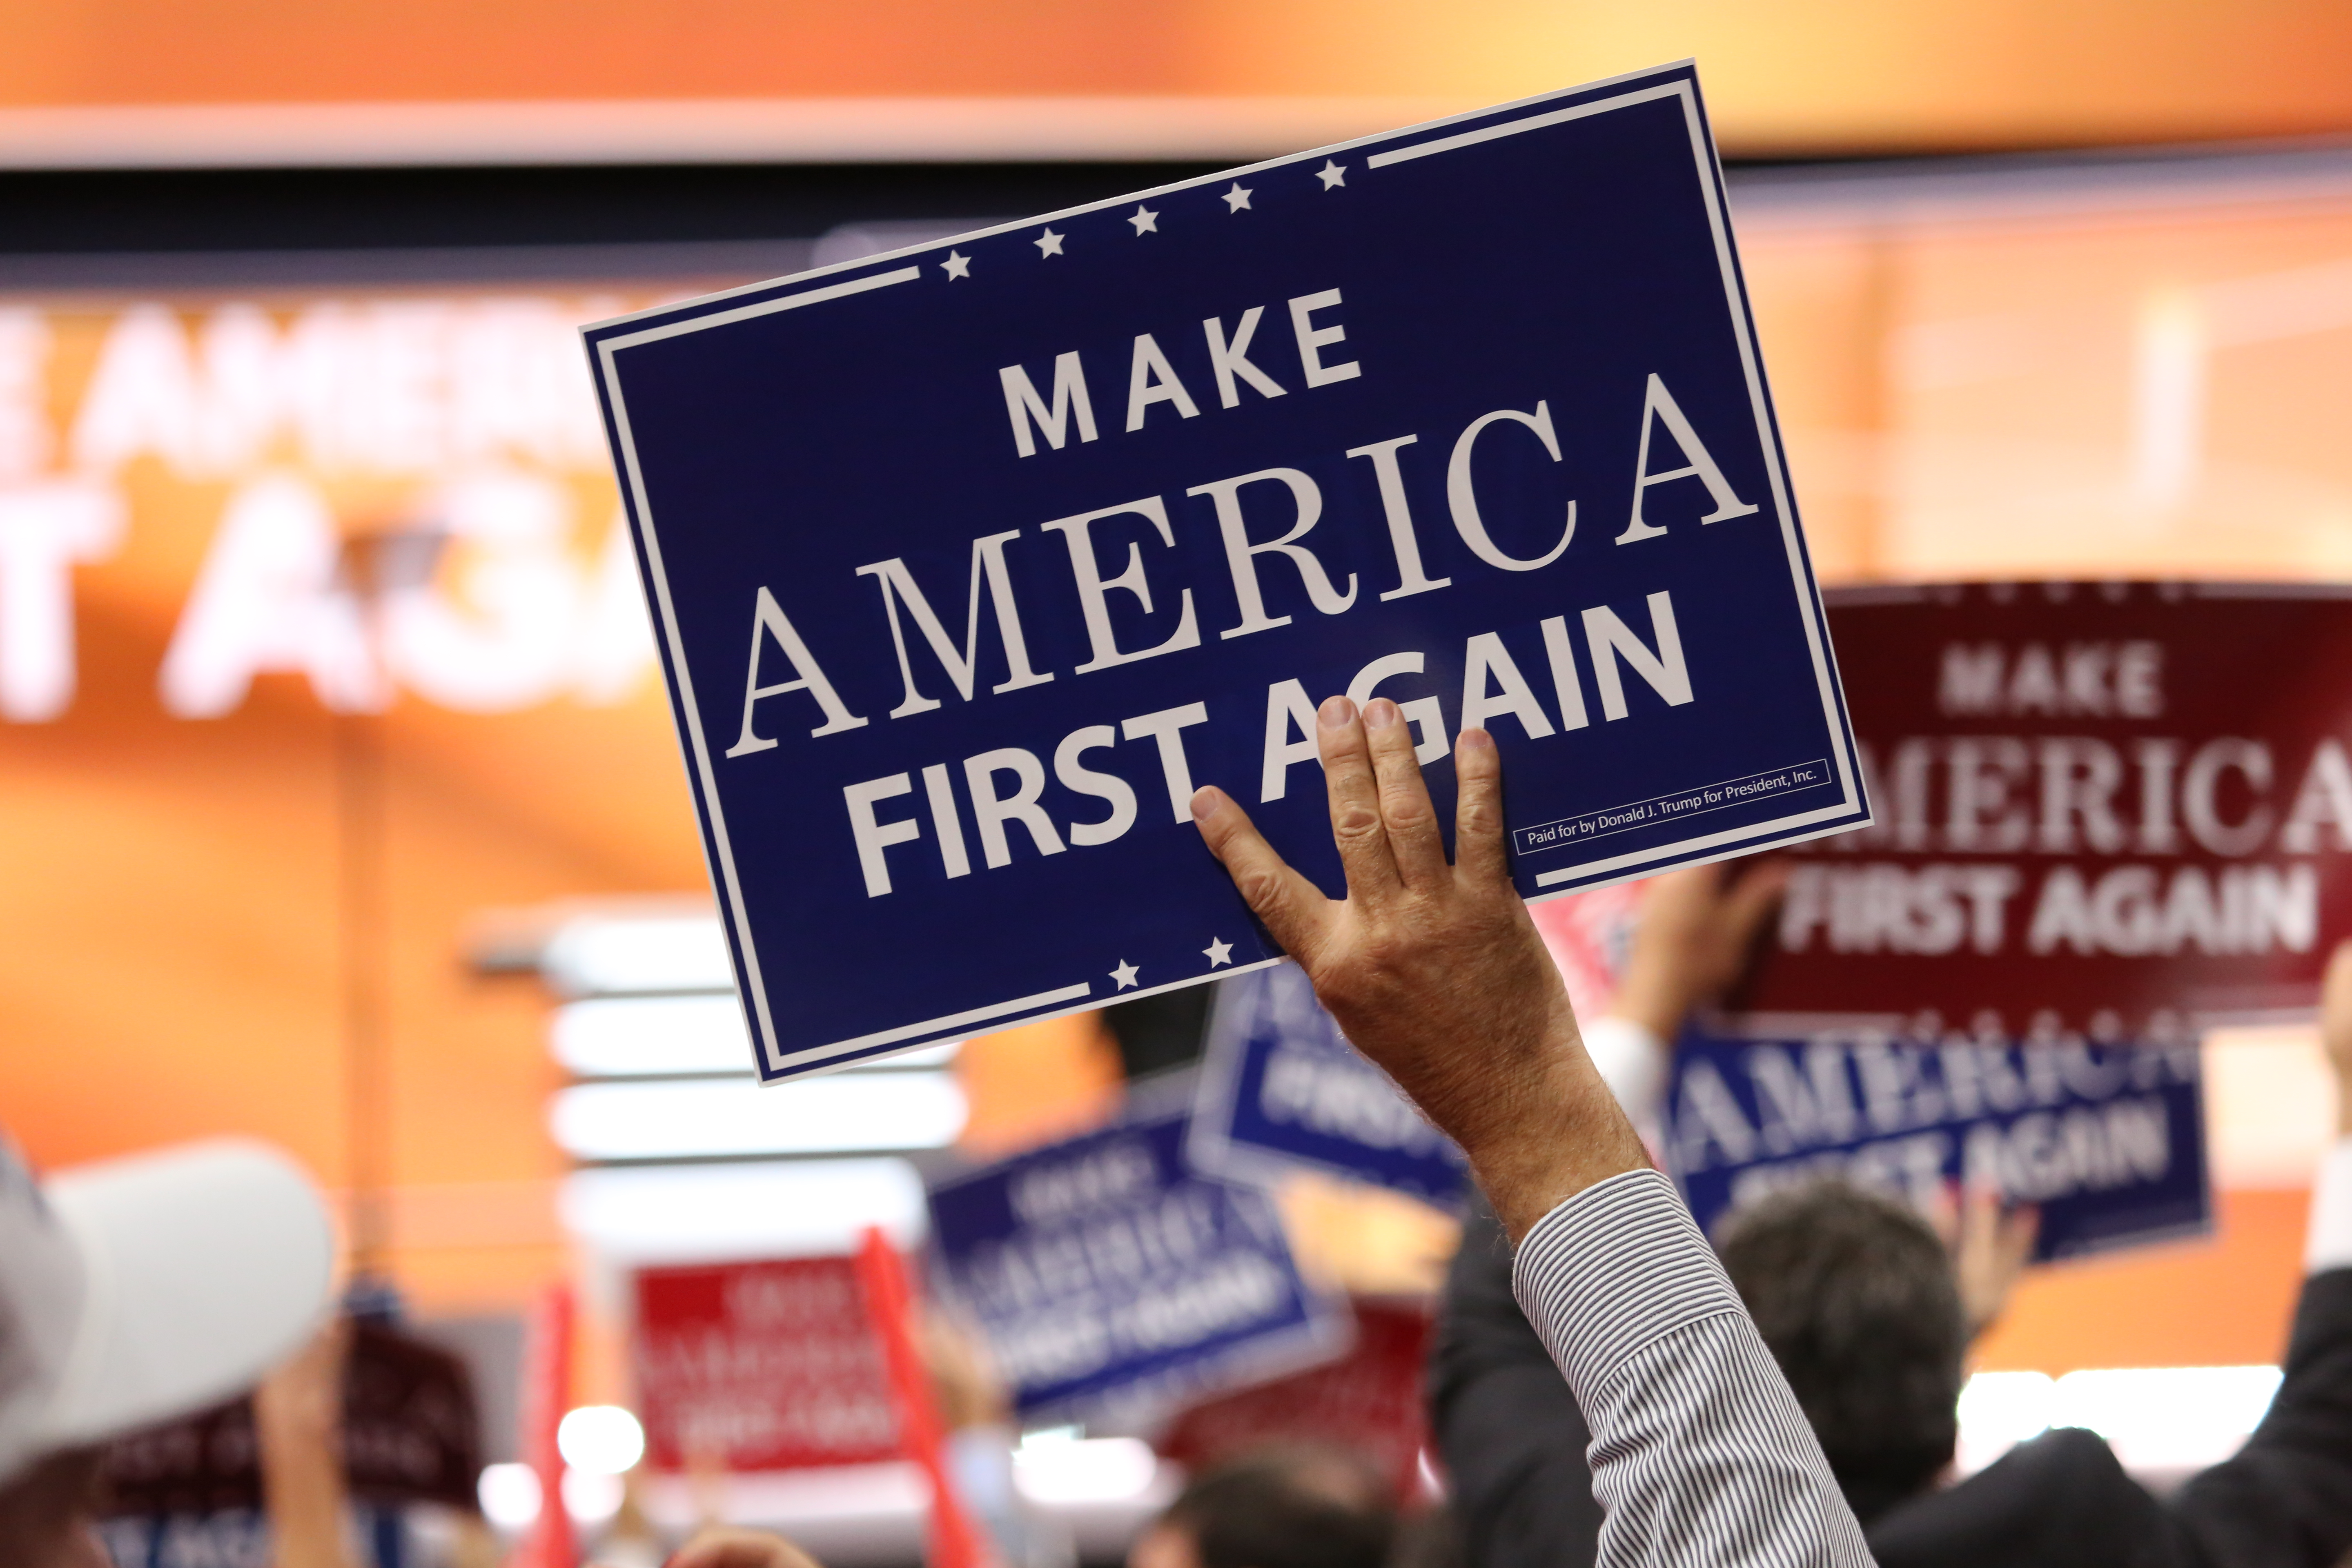 """Delegates hold """"Make America First Again"""" posters on the Republican National Convention floor in Cleveland, Ohio, July 20, 2016. (Photo: Ali Shaker / VOA)"""